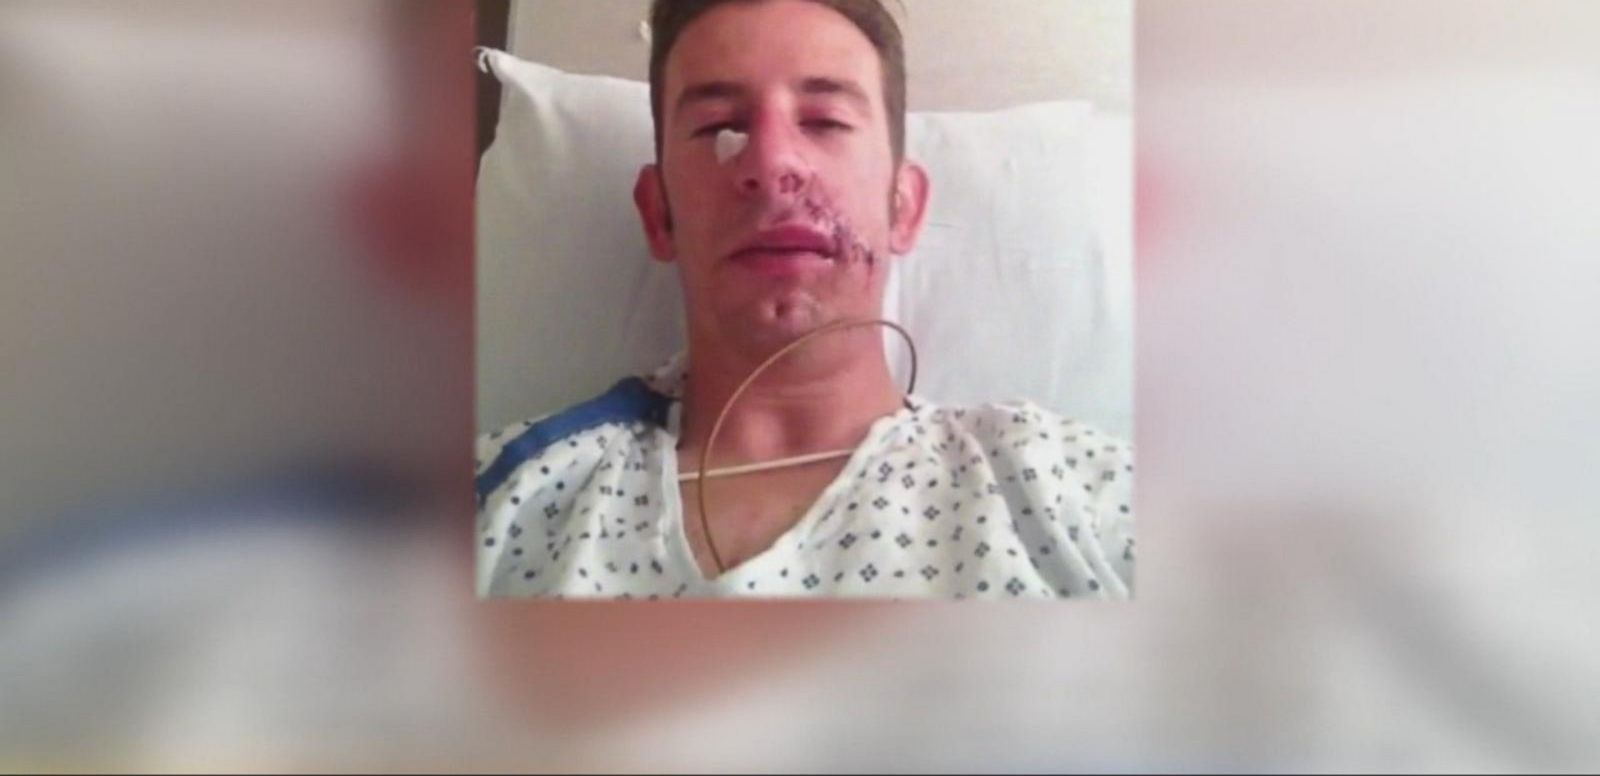 VIDEO: Police Officer Survives After Being Shot 7 Times